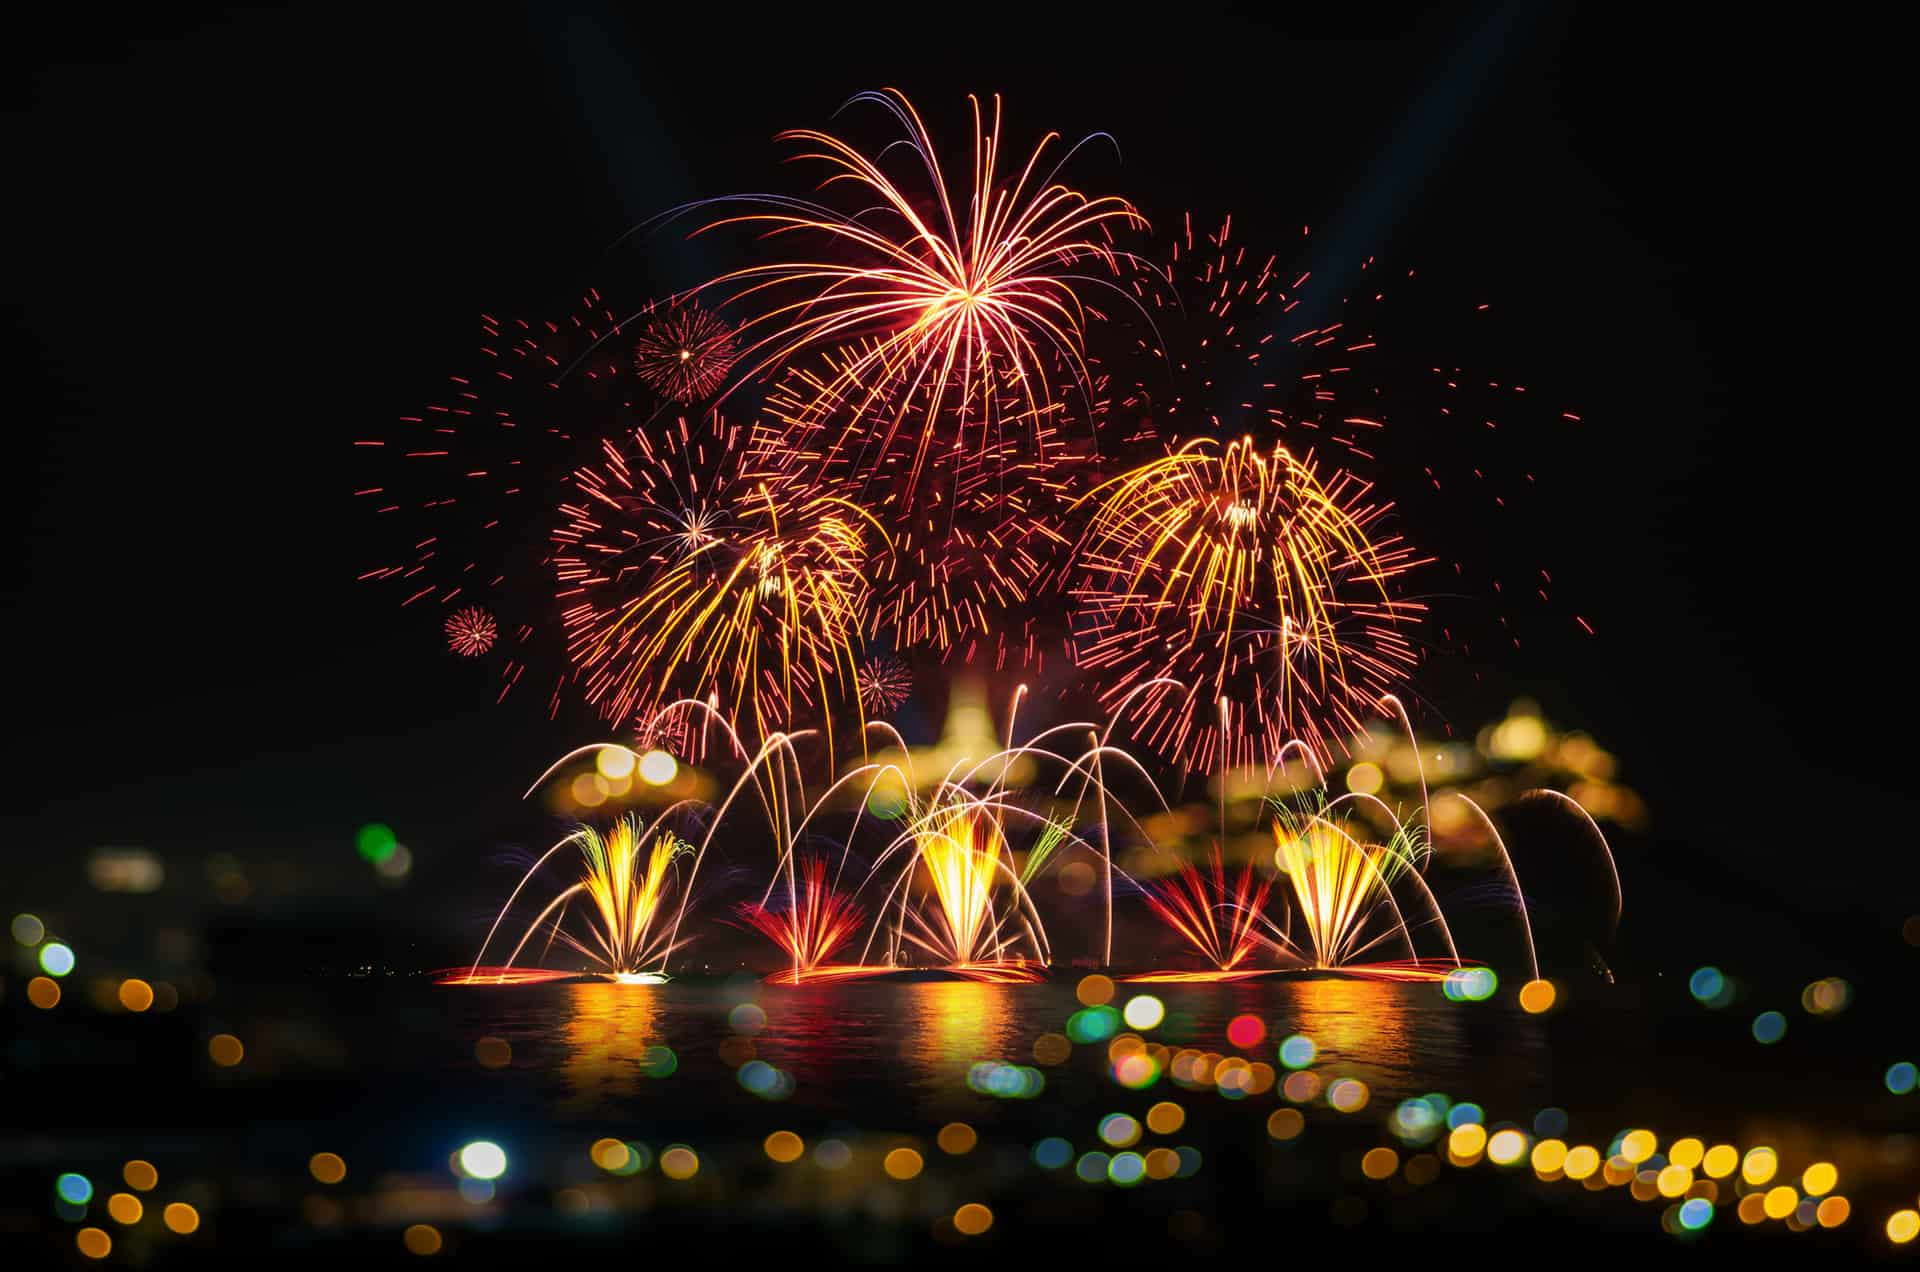 8 Places You can Watch New Year's Eve Fireworks in Edmonton with Kids